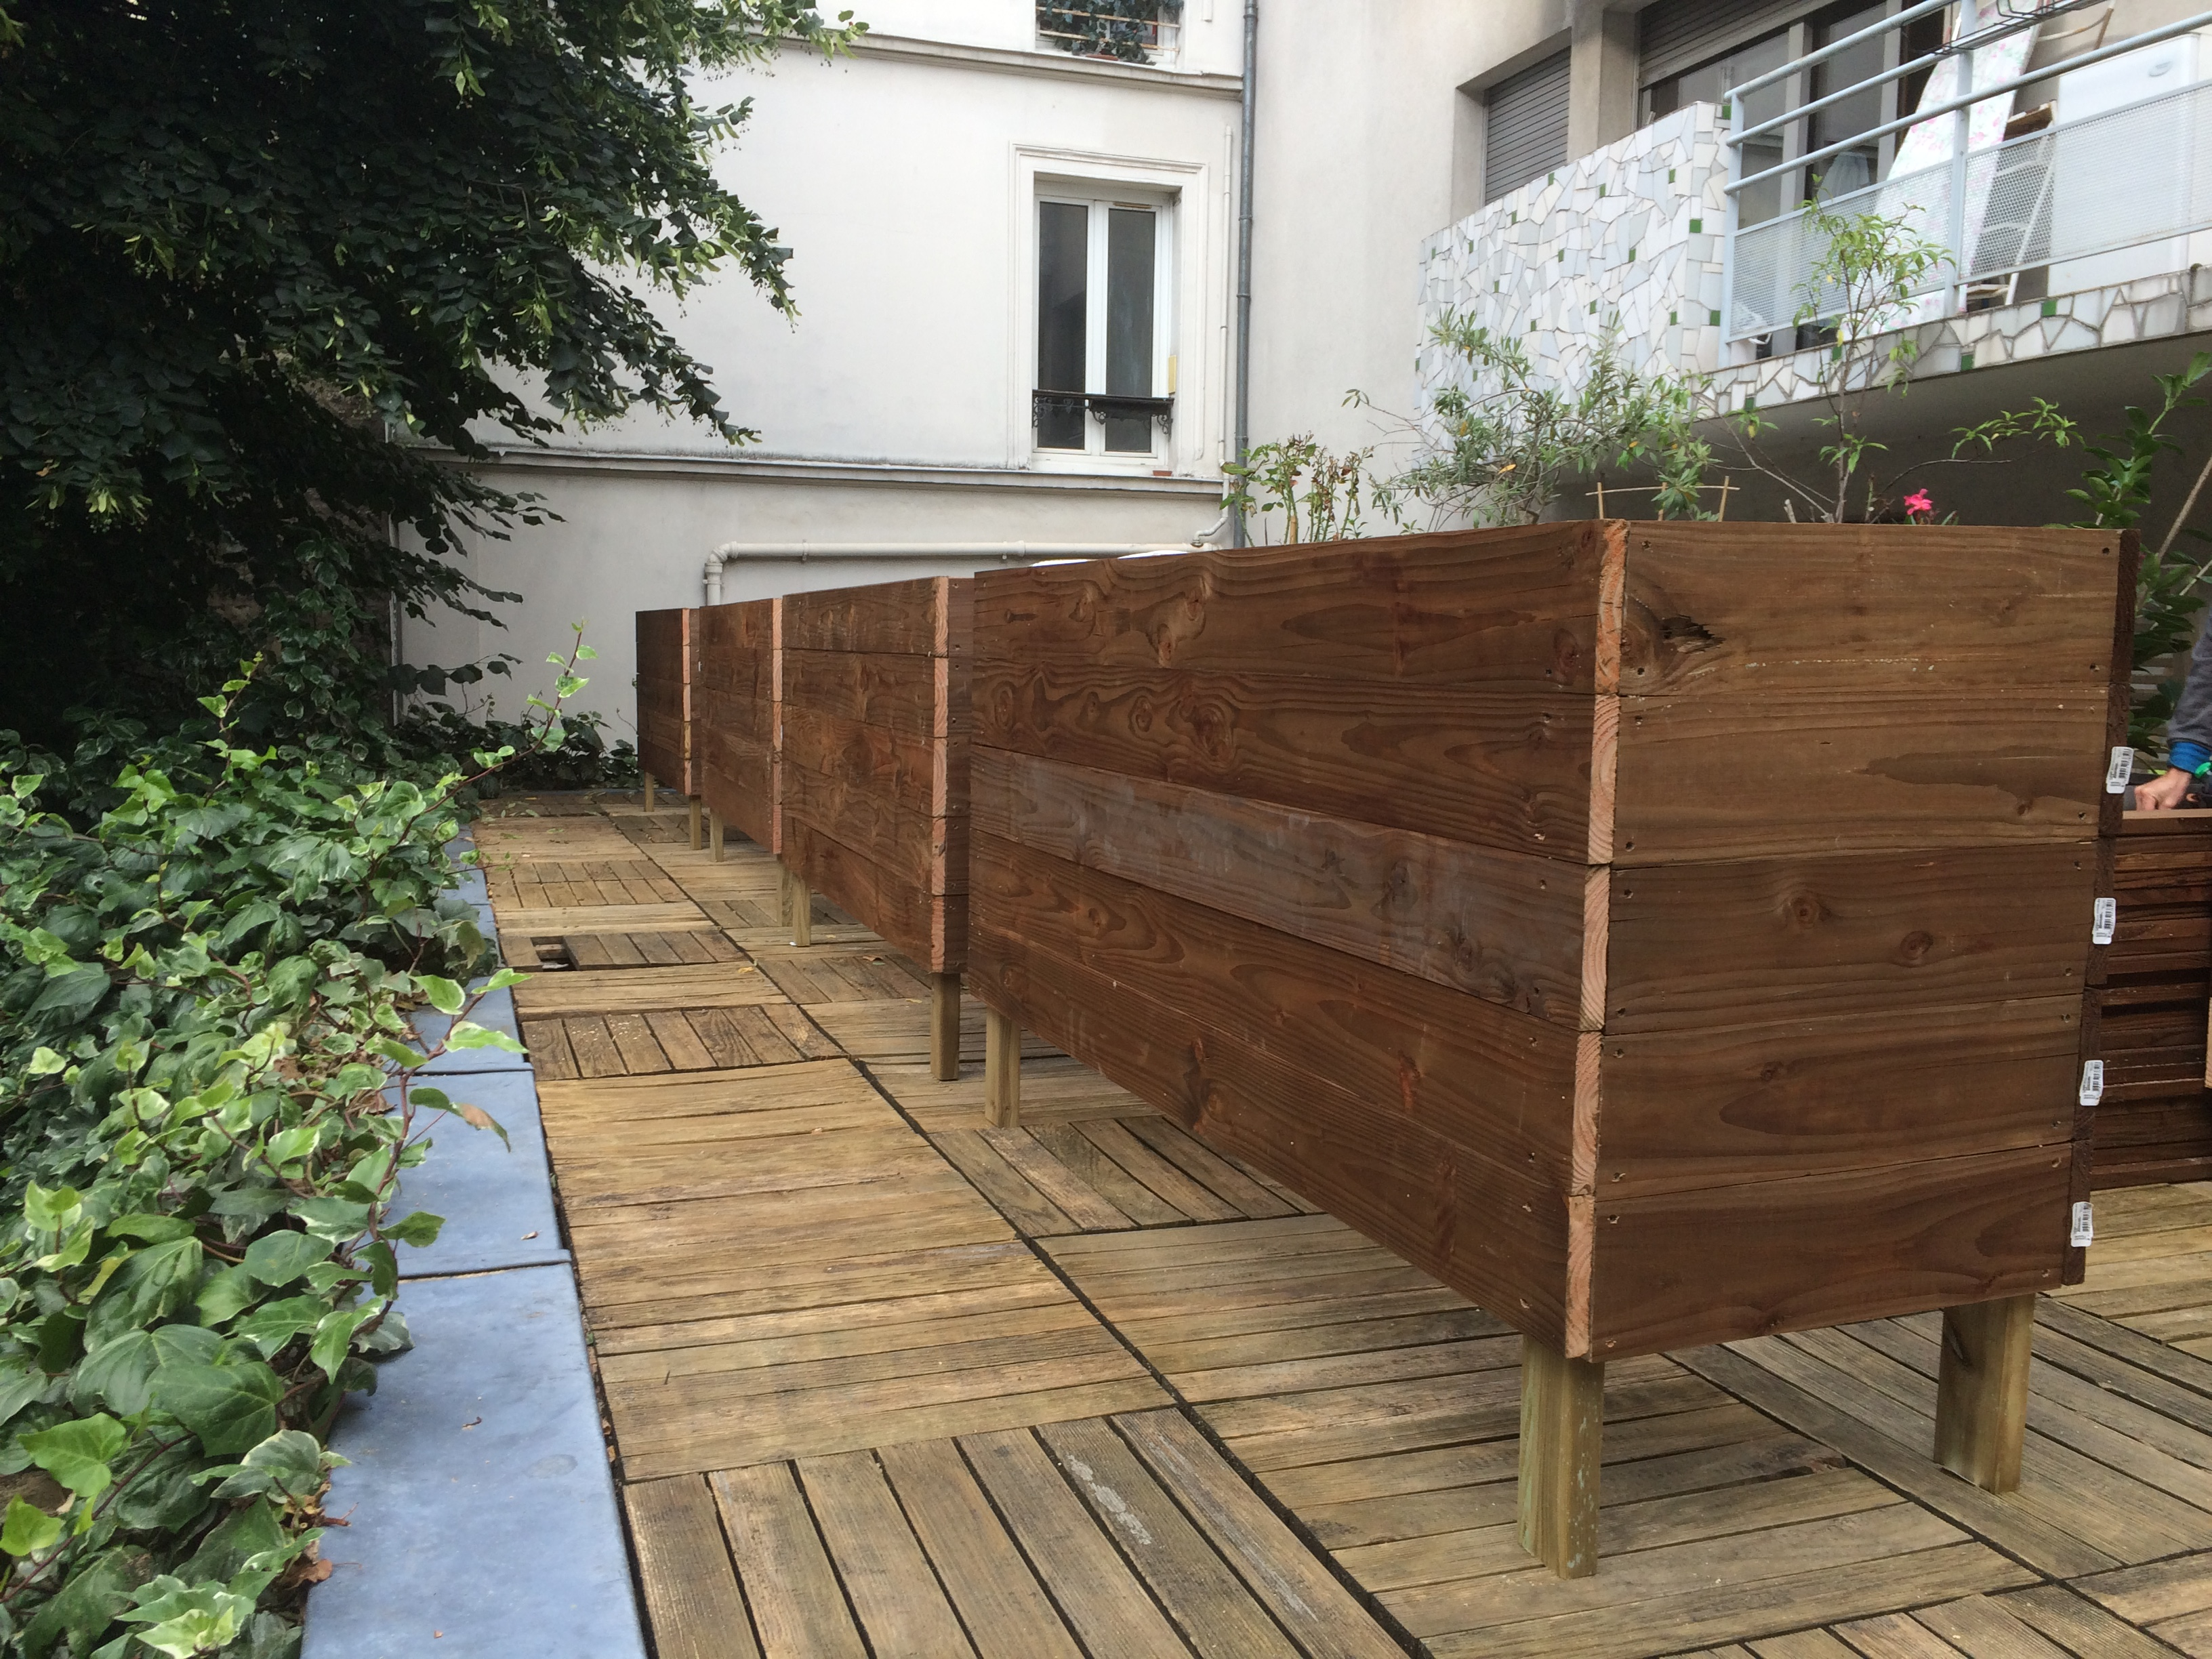 La terrasse bois le roi photo diverses id es de conception de patio en bois pour for Barriere de jardin bois